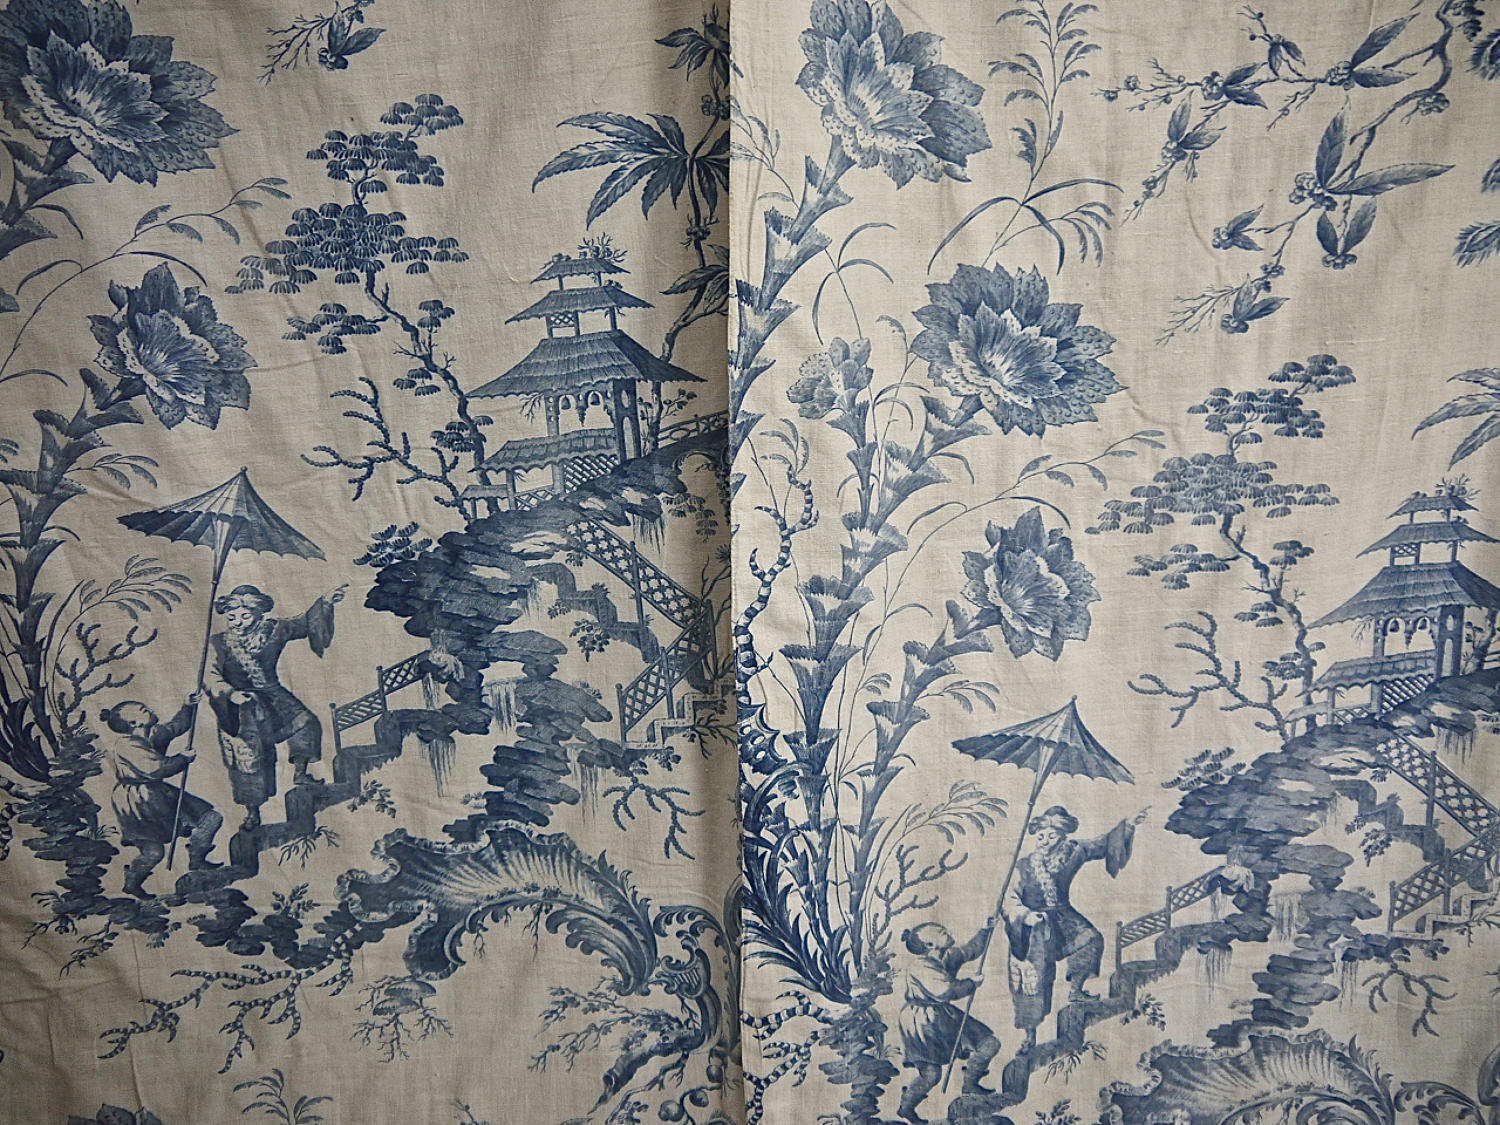 Pair of 18th century French Chinoiserie toile bed hangings